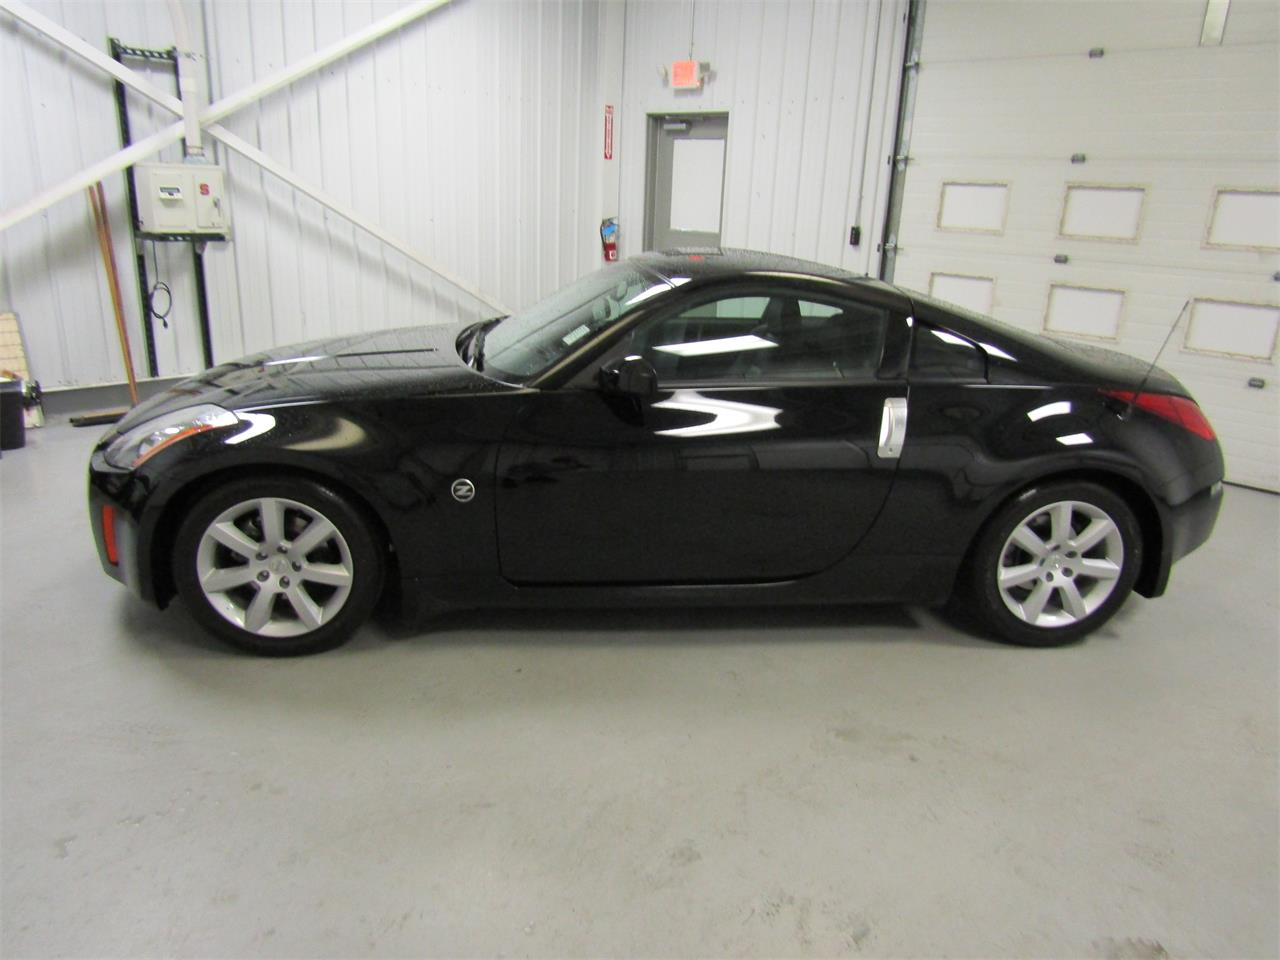 Large Picture of 2003 Nissan 350Z - $29,555.00 Offered by Duncan Imports & Classic Cars - NIWA